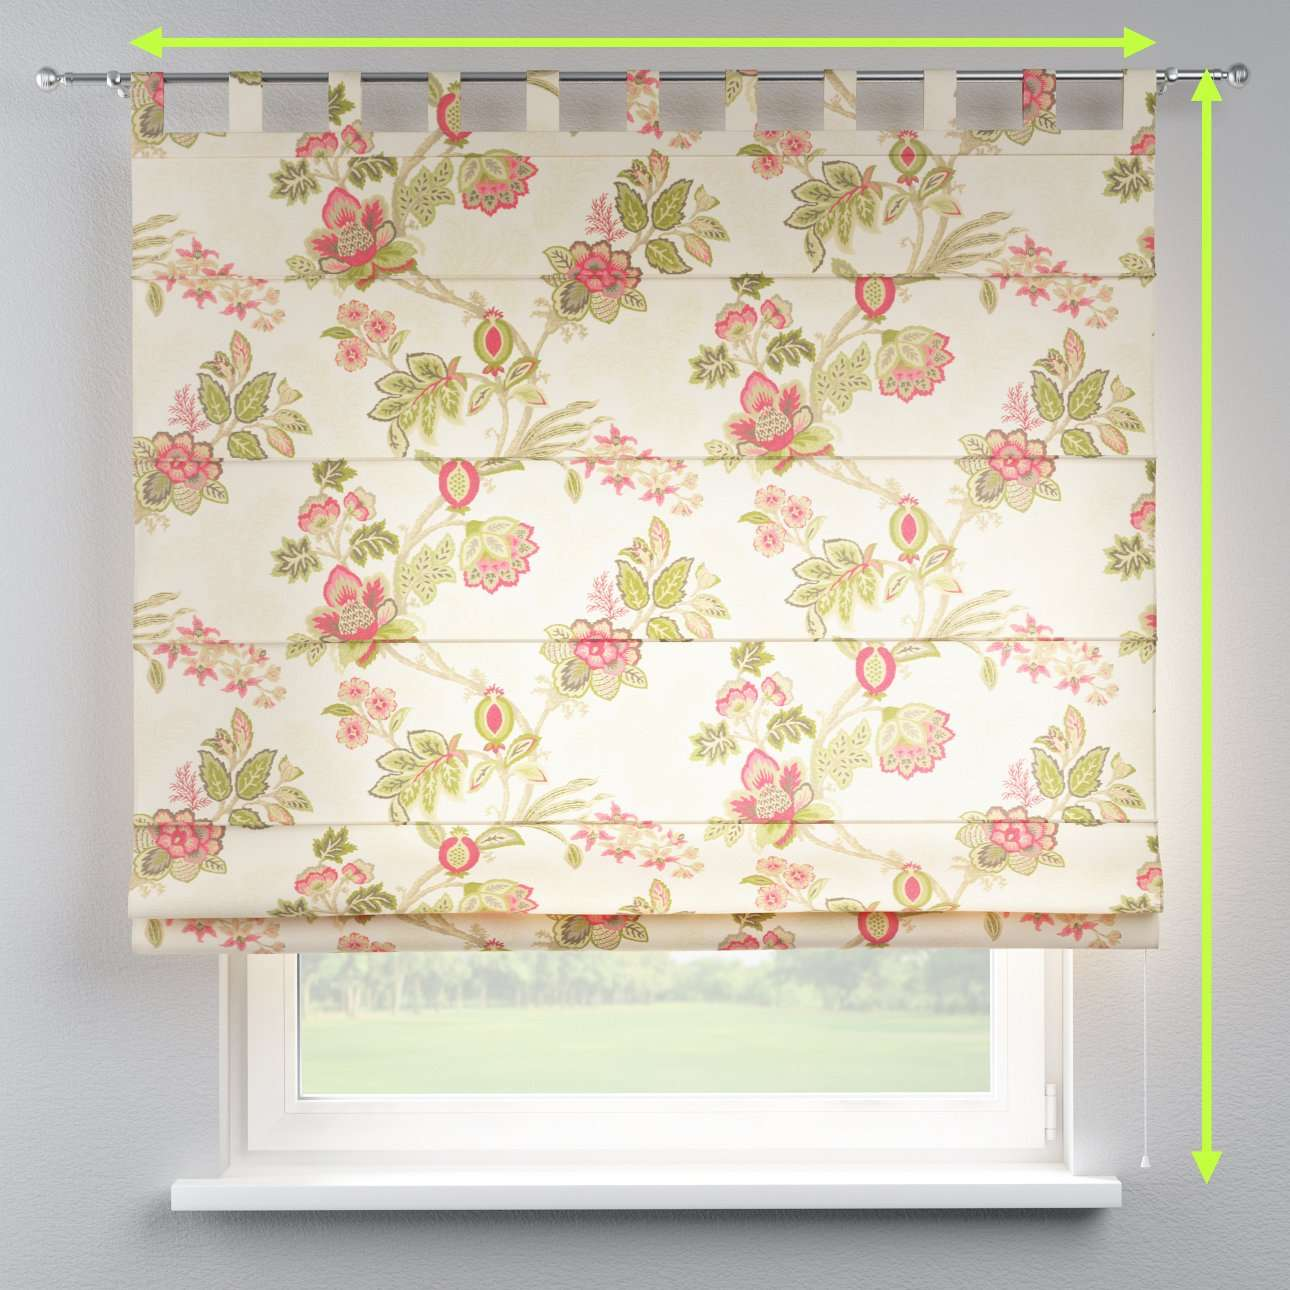 Verona tab top roman blind in collection Flowers, fabric: 140-98